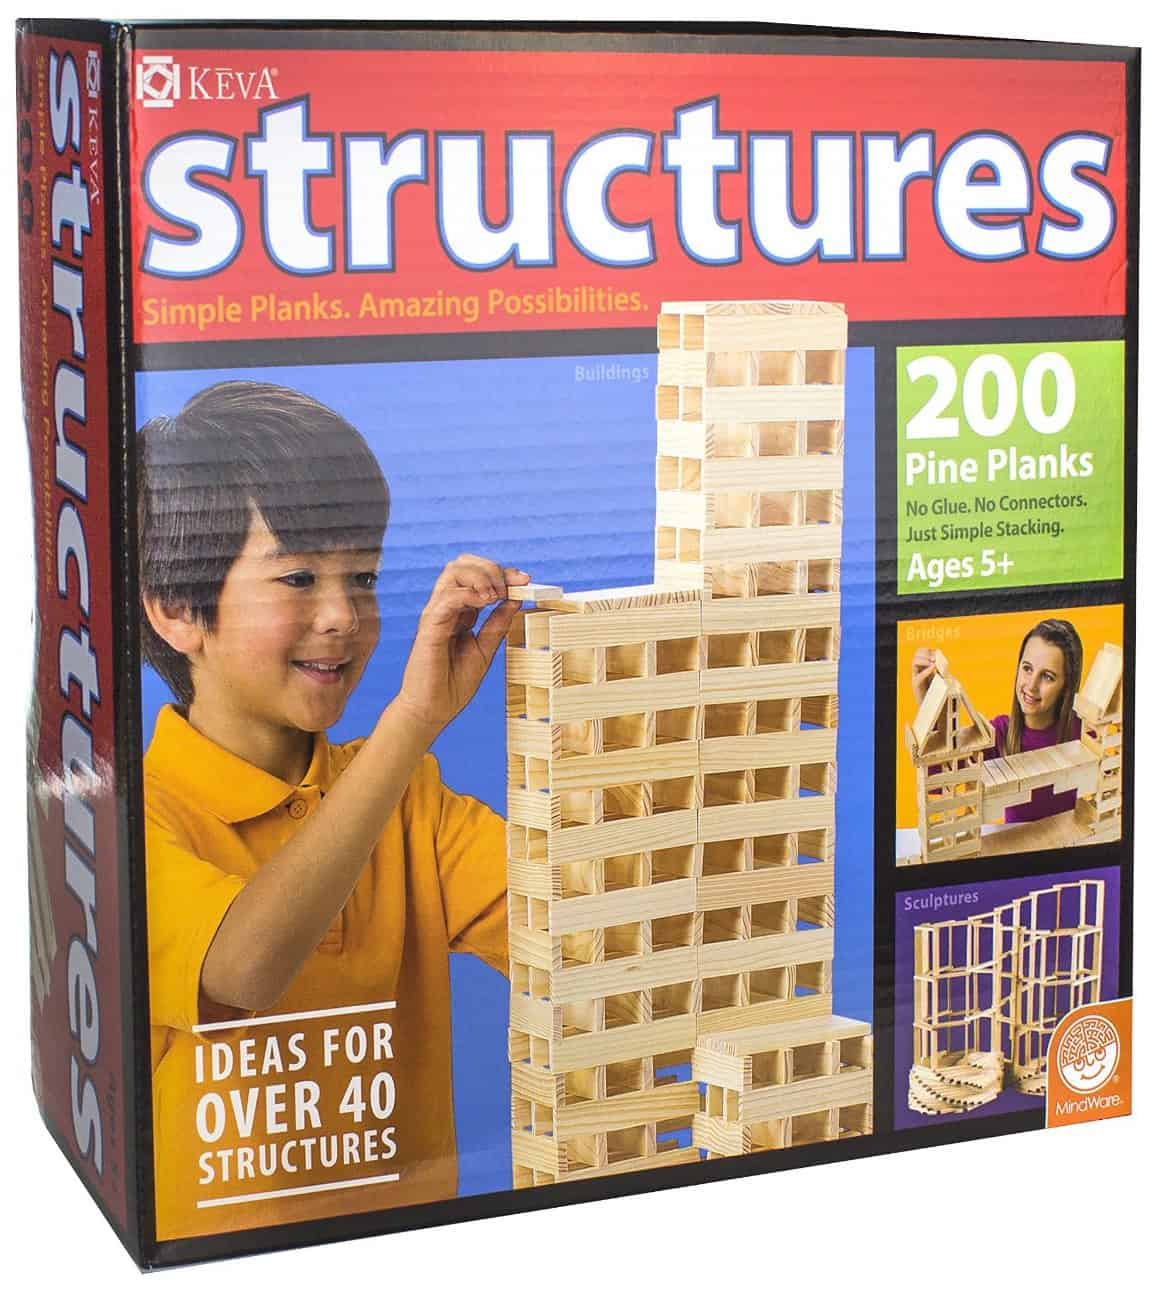 ultimate-gift-guide-best-birthday-and-holiday-gifts-and-toys-for-toddlers-2-3-years-old-keva-planks